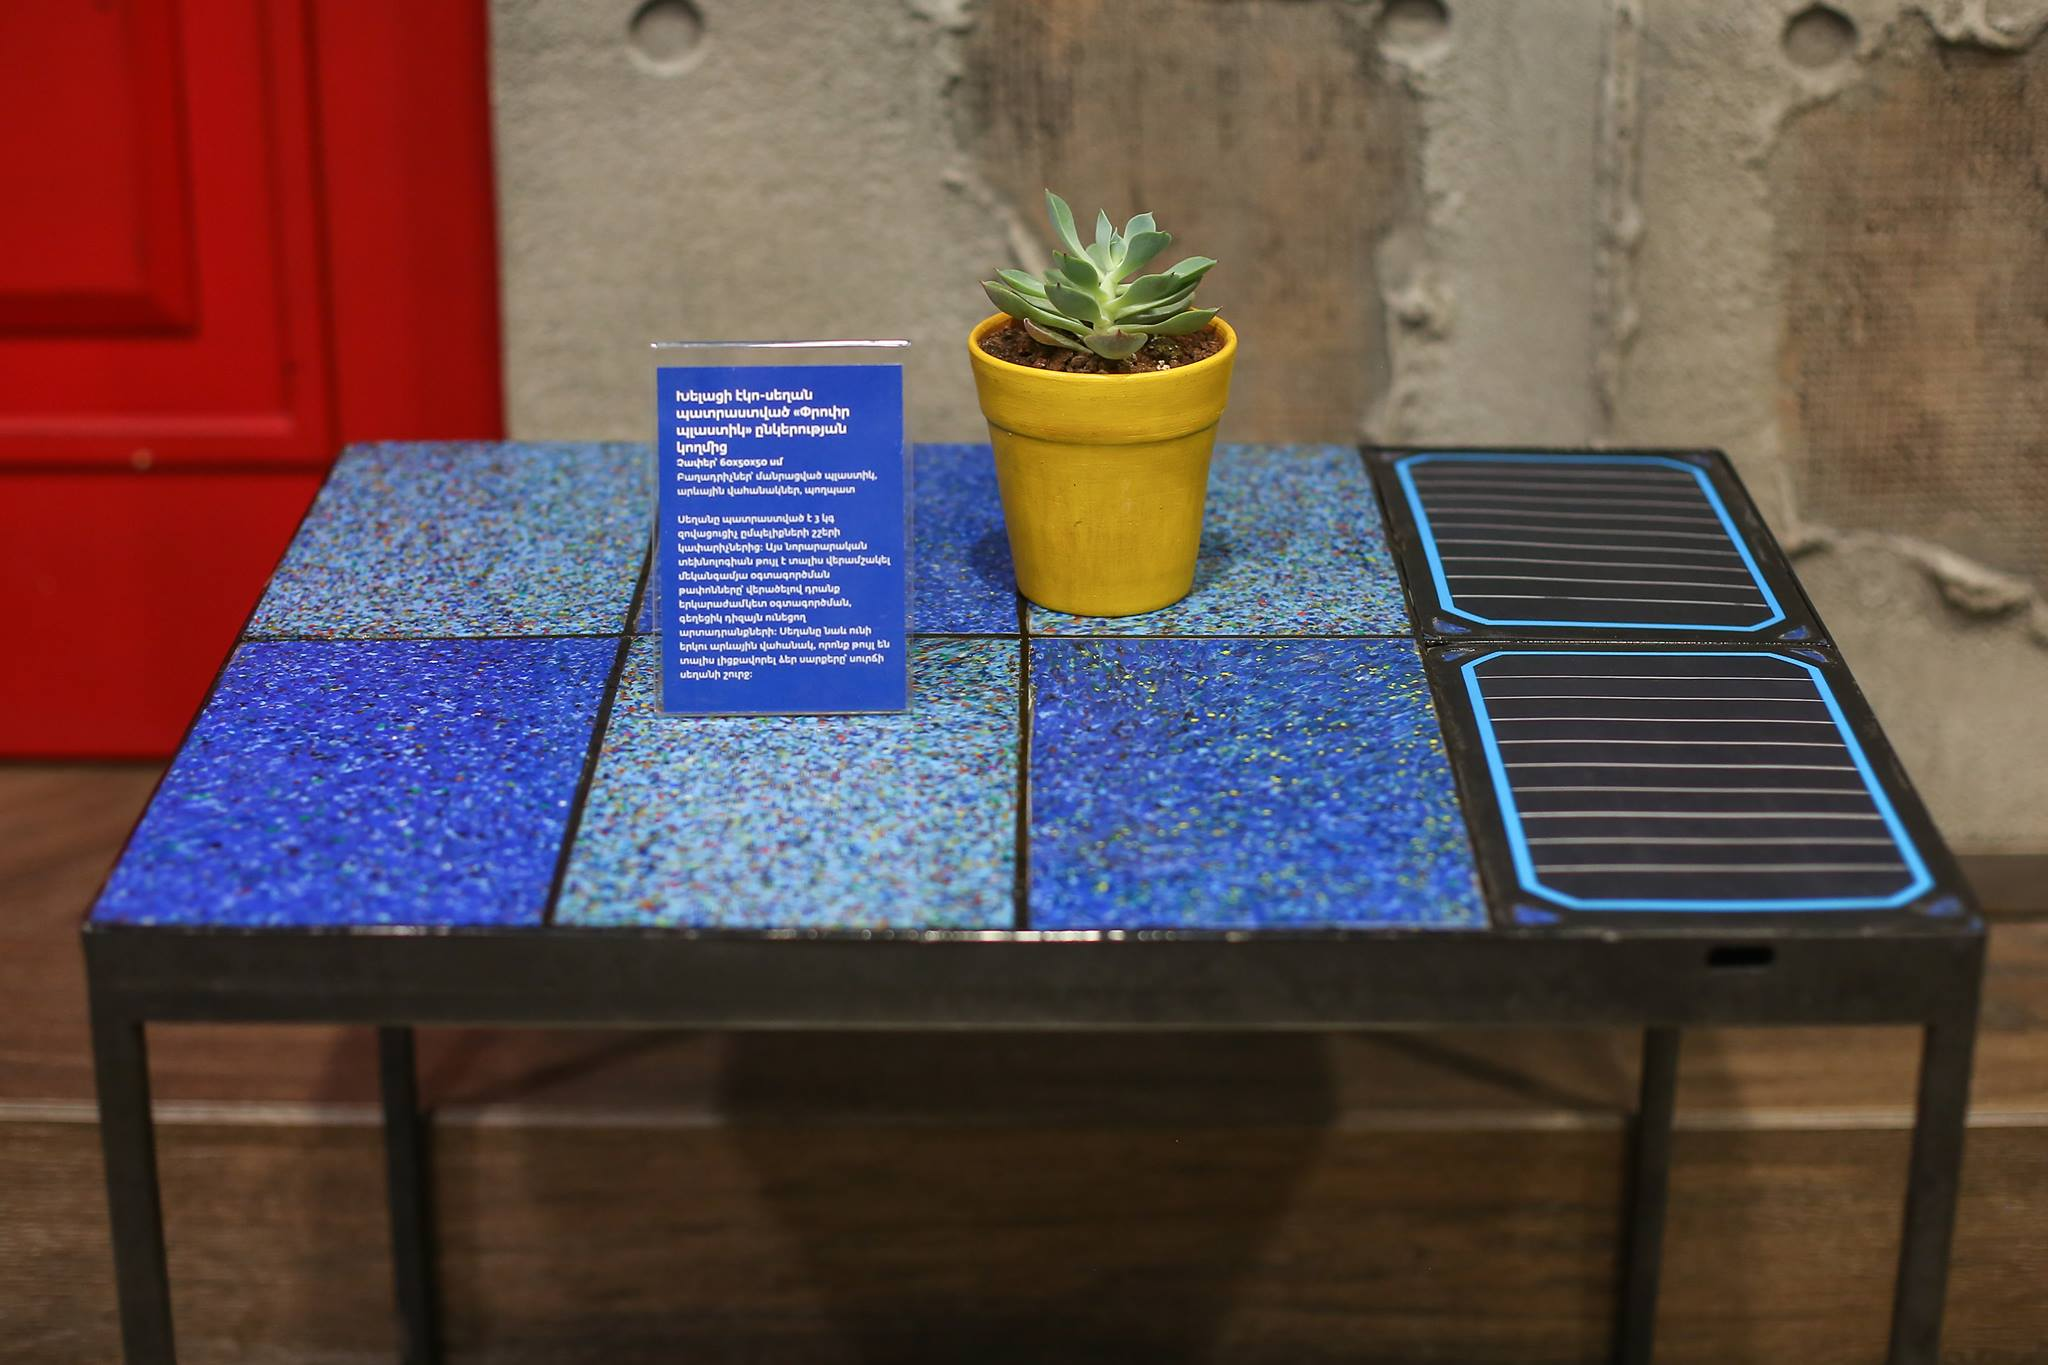 Transforming discarded plastic into commercially viable products -